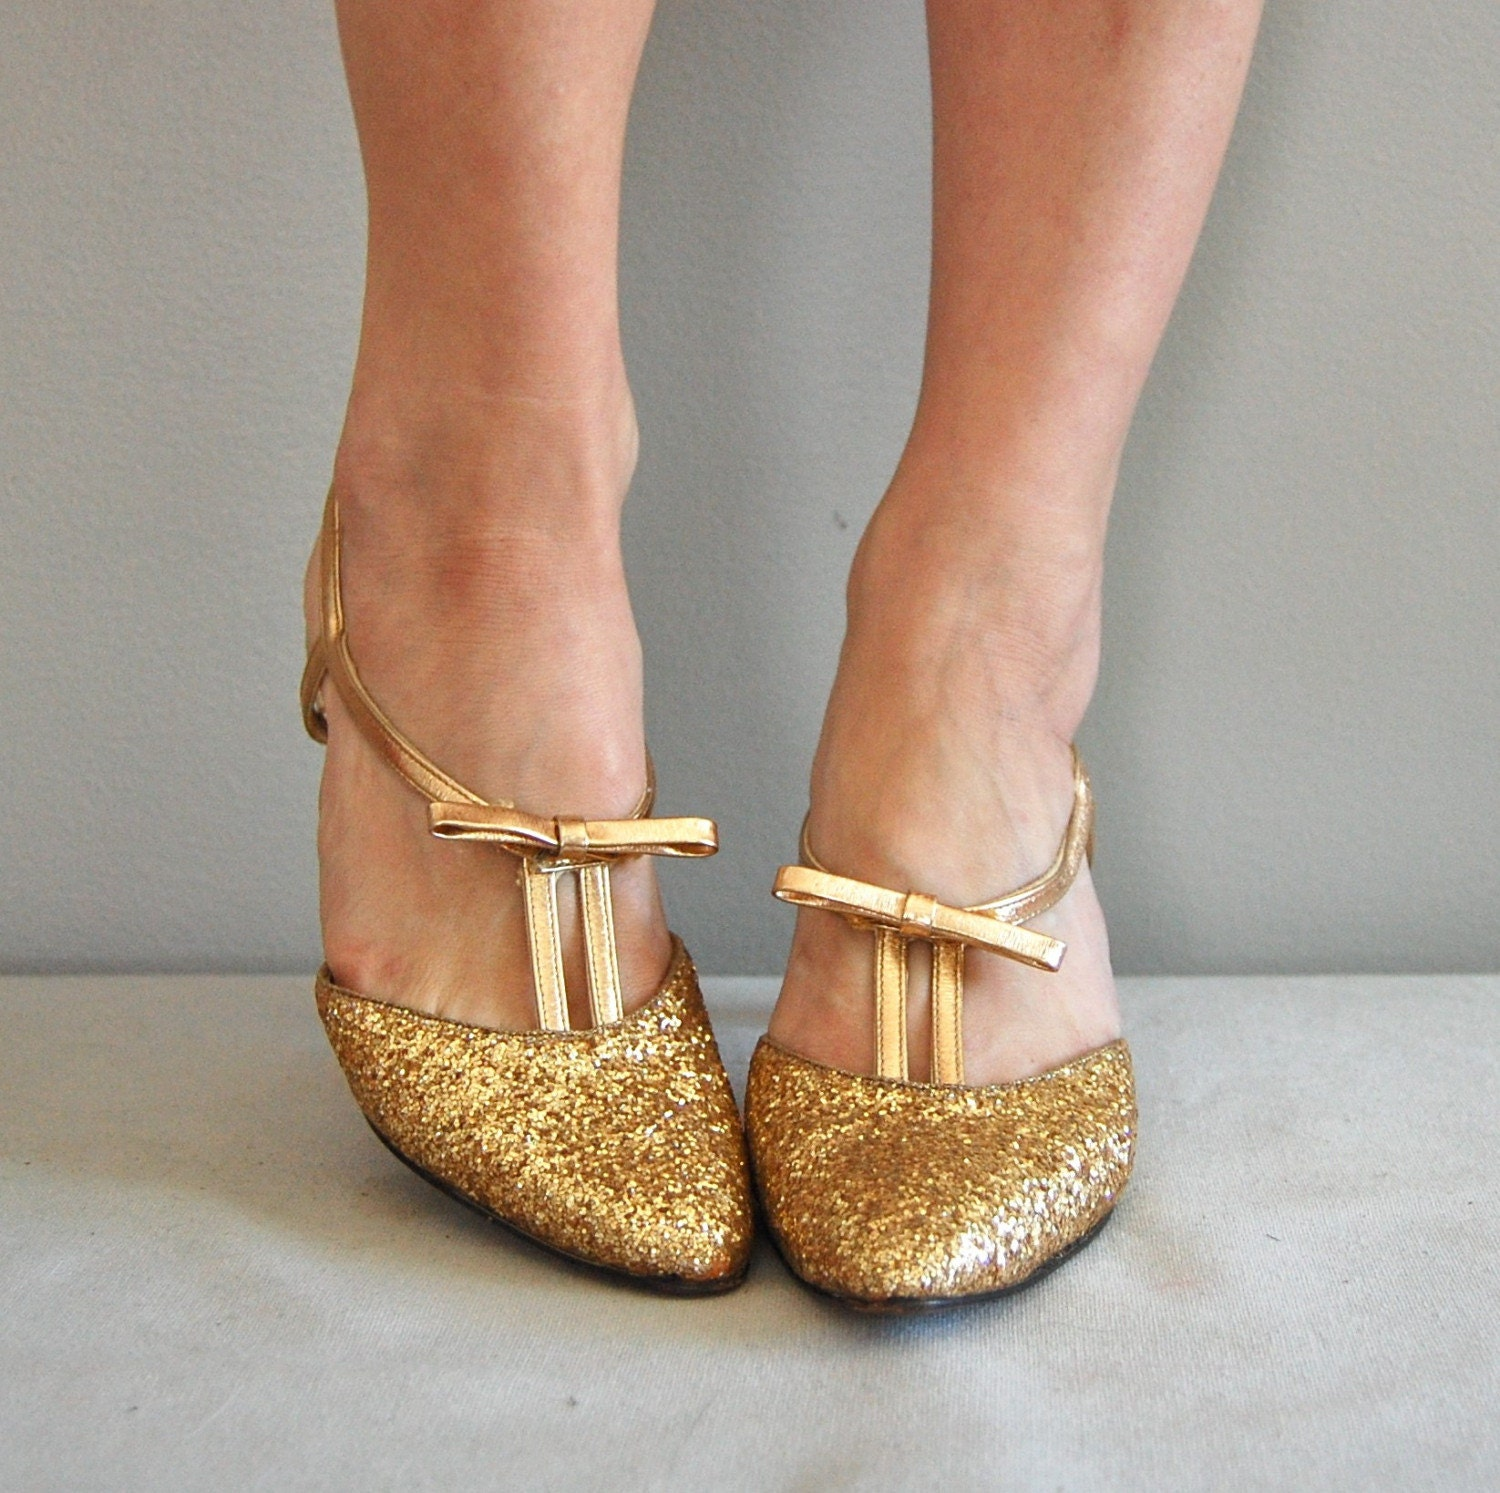 Gold Kitten Heel Shoes | Tsaa Heel